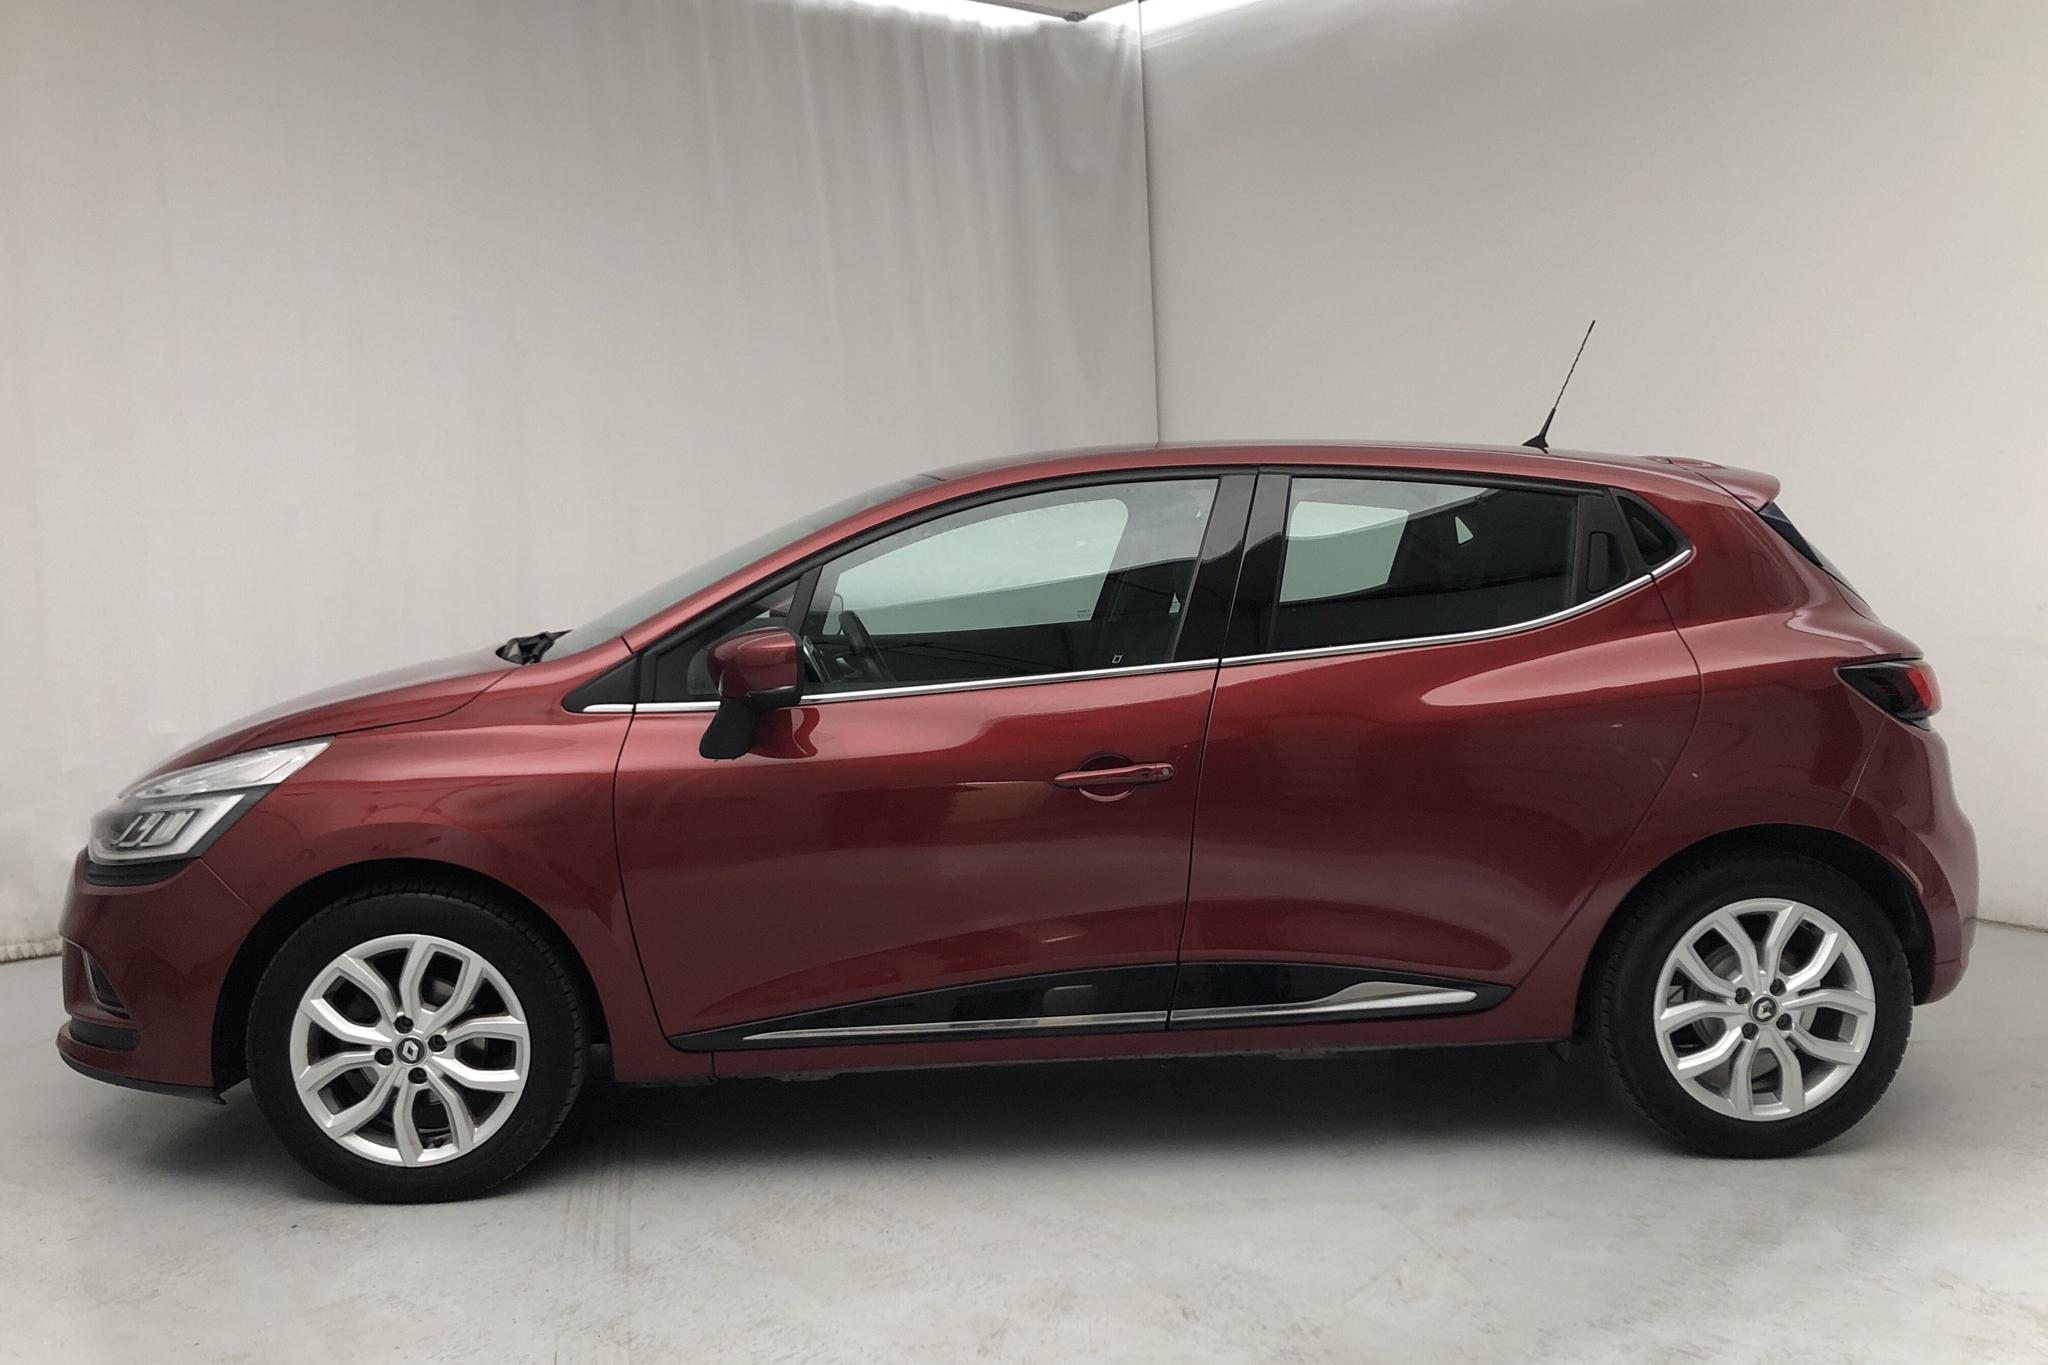 Renault Clio IV 0.9 TCe 90 5dr (90hk) - 25 570 km - Manual - red - 2017